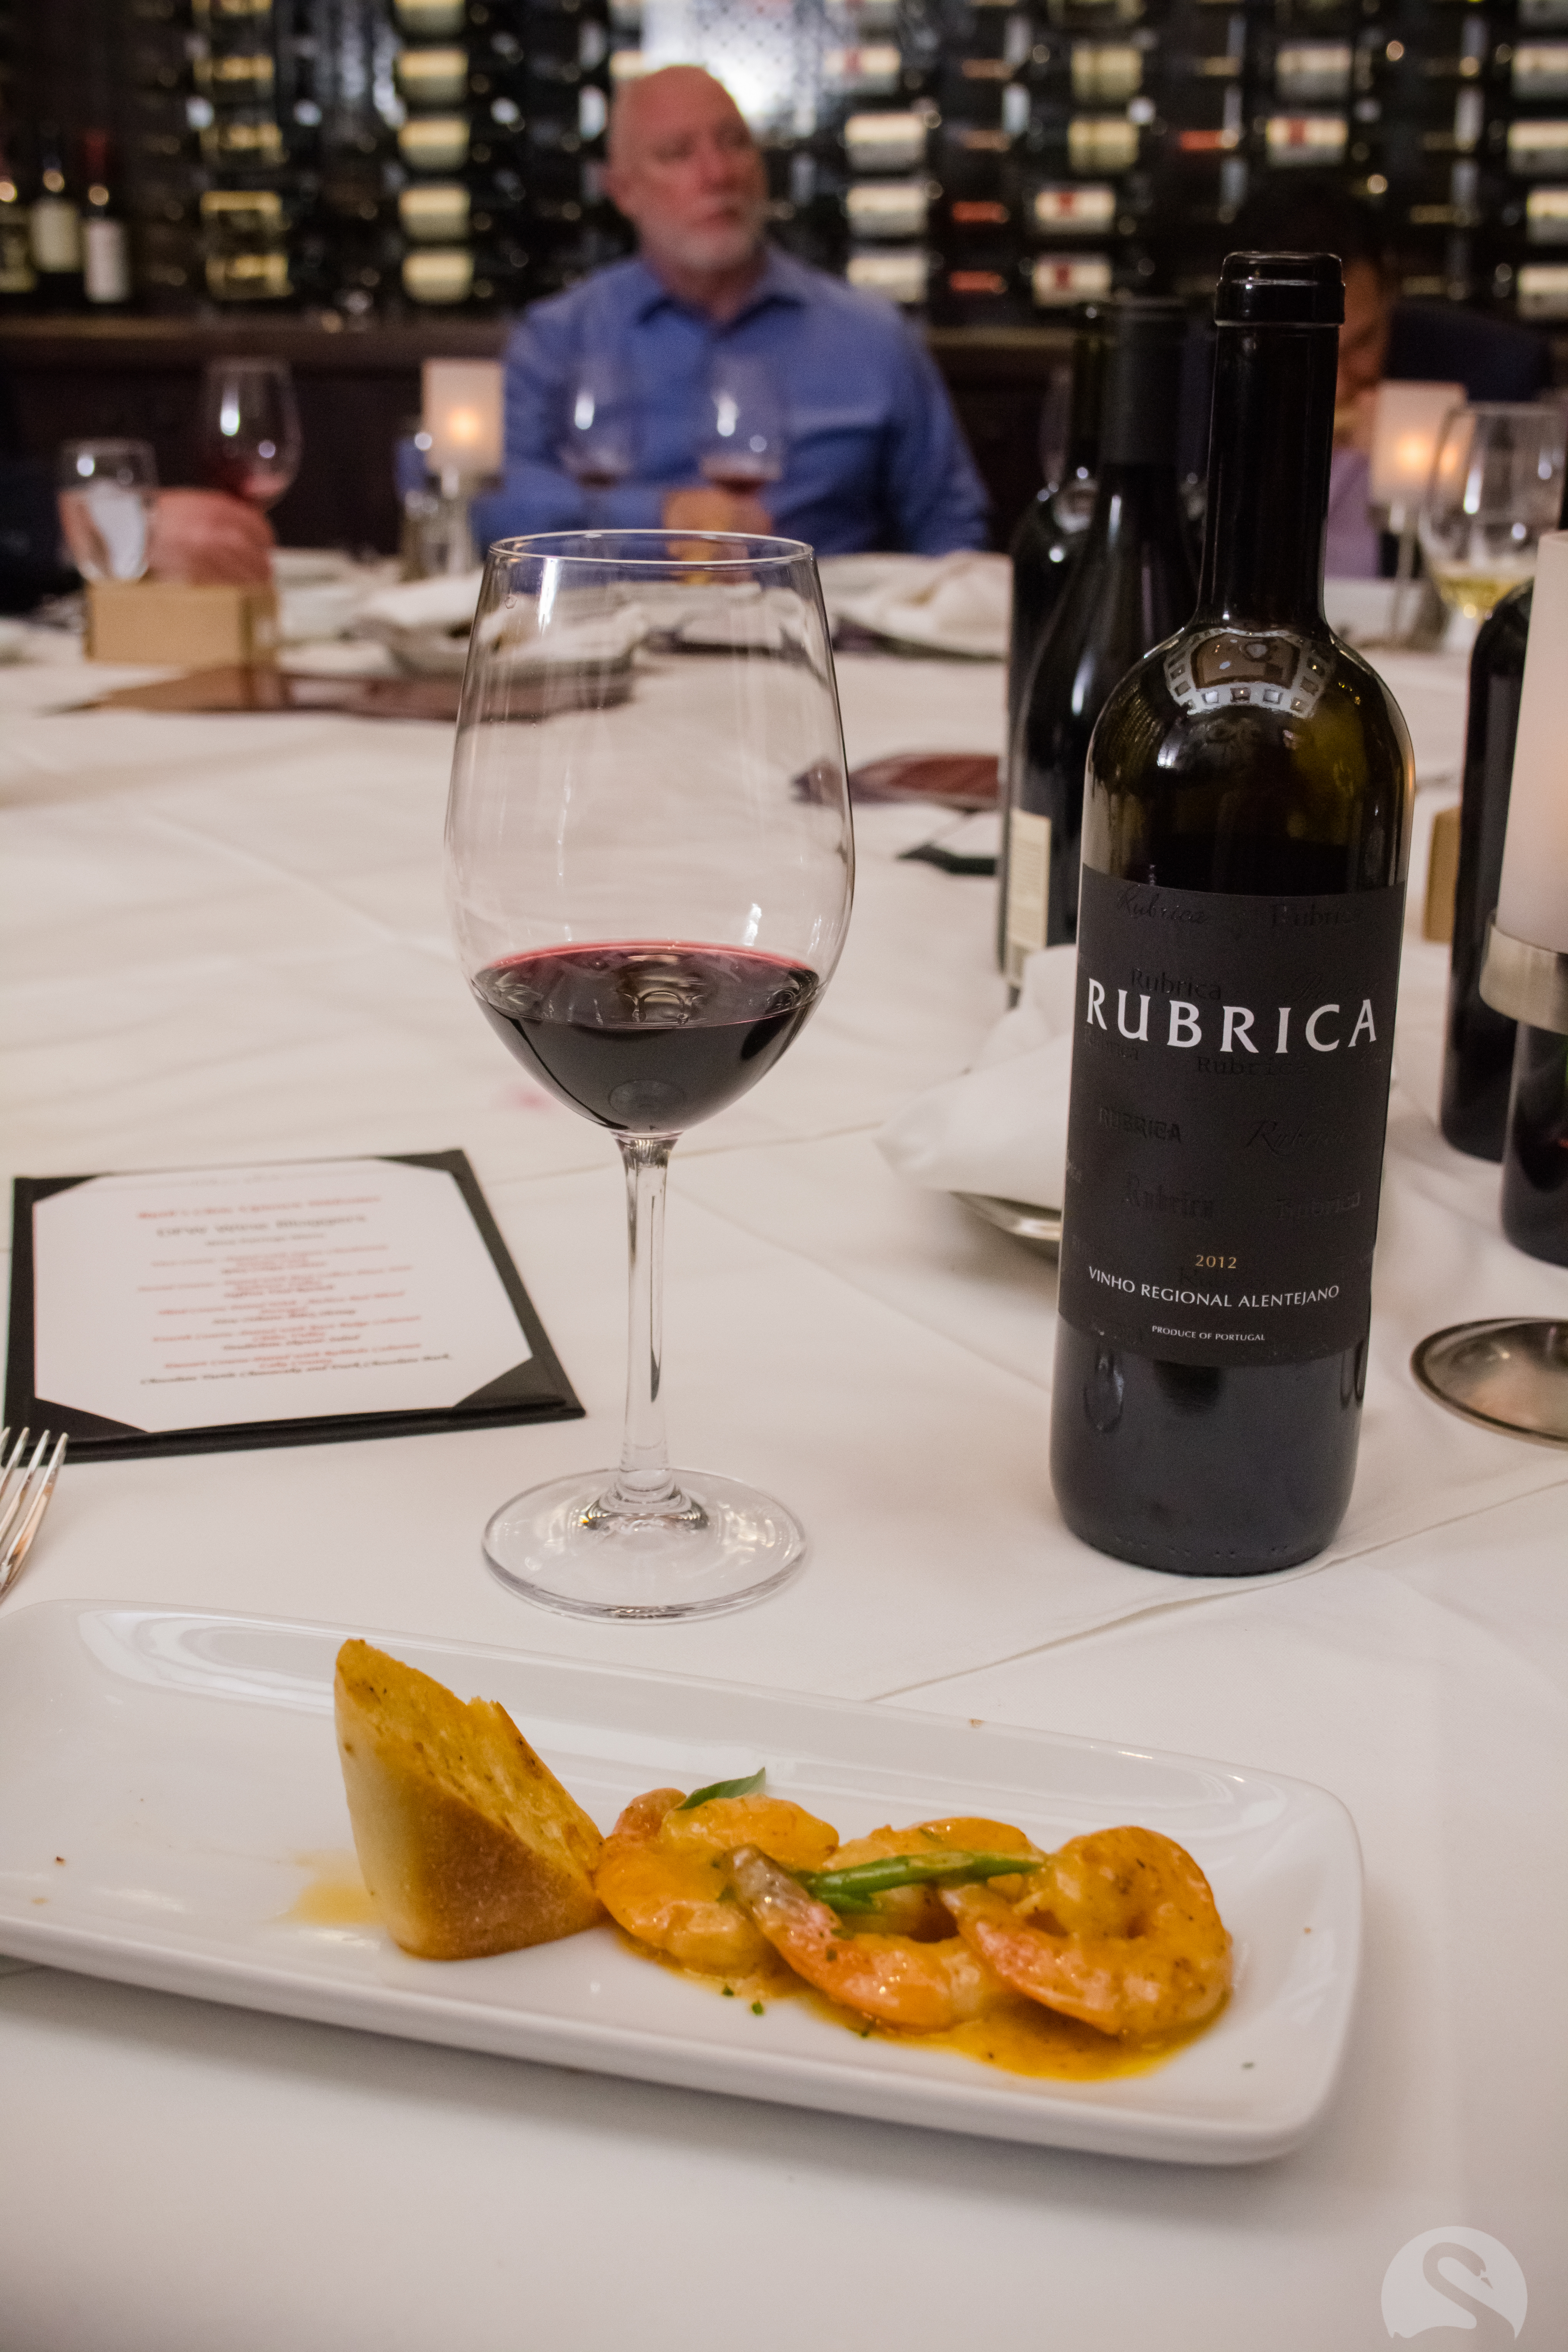 Spicy Shrimp paired with Rubrica